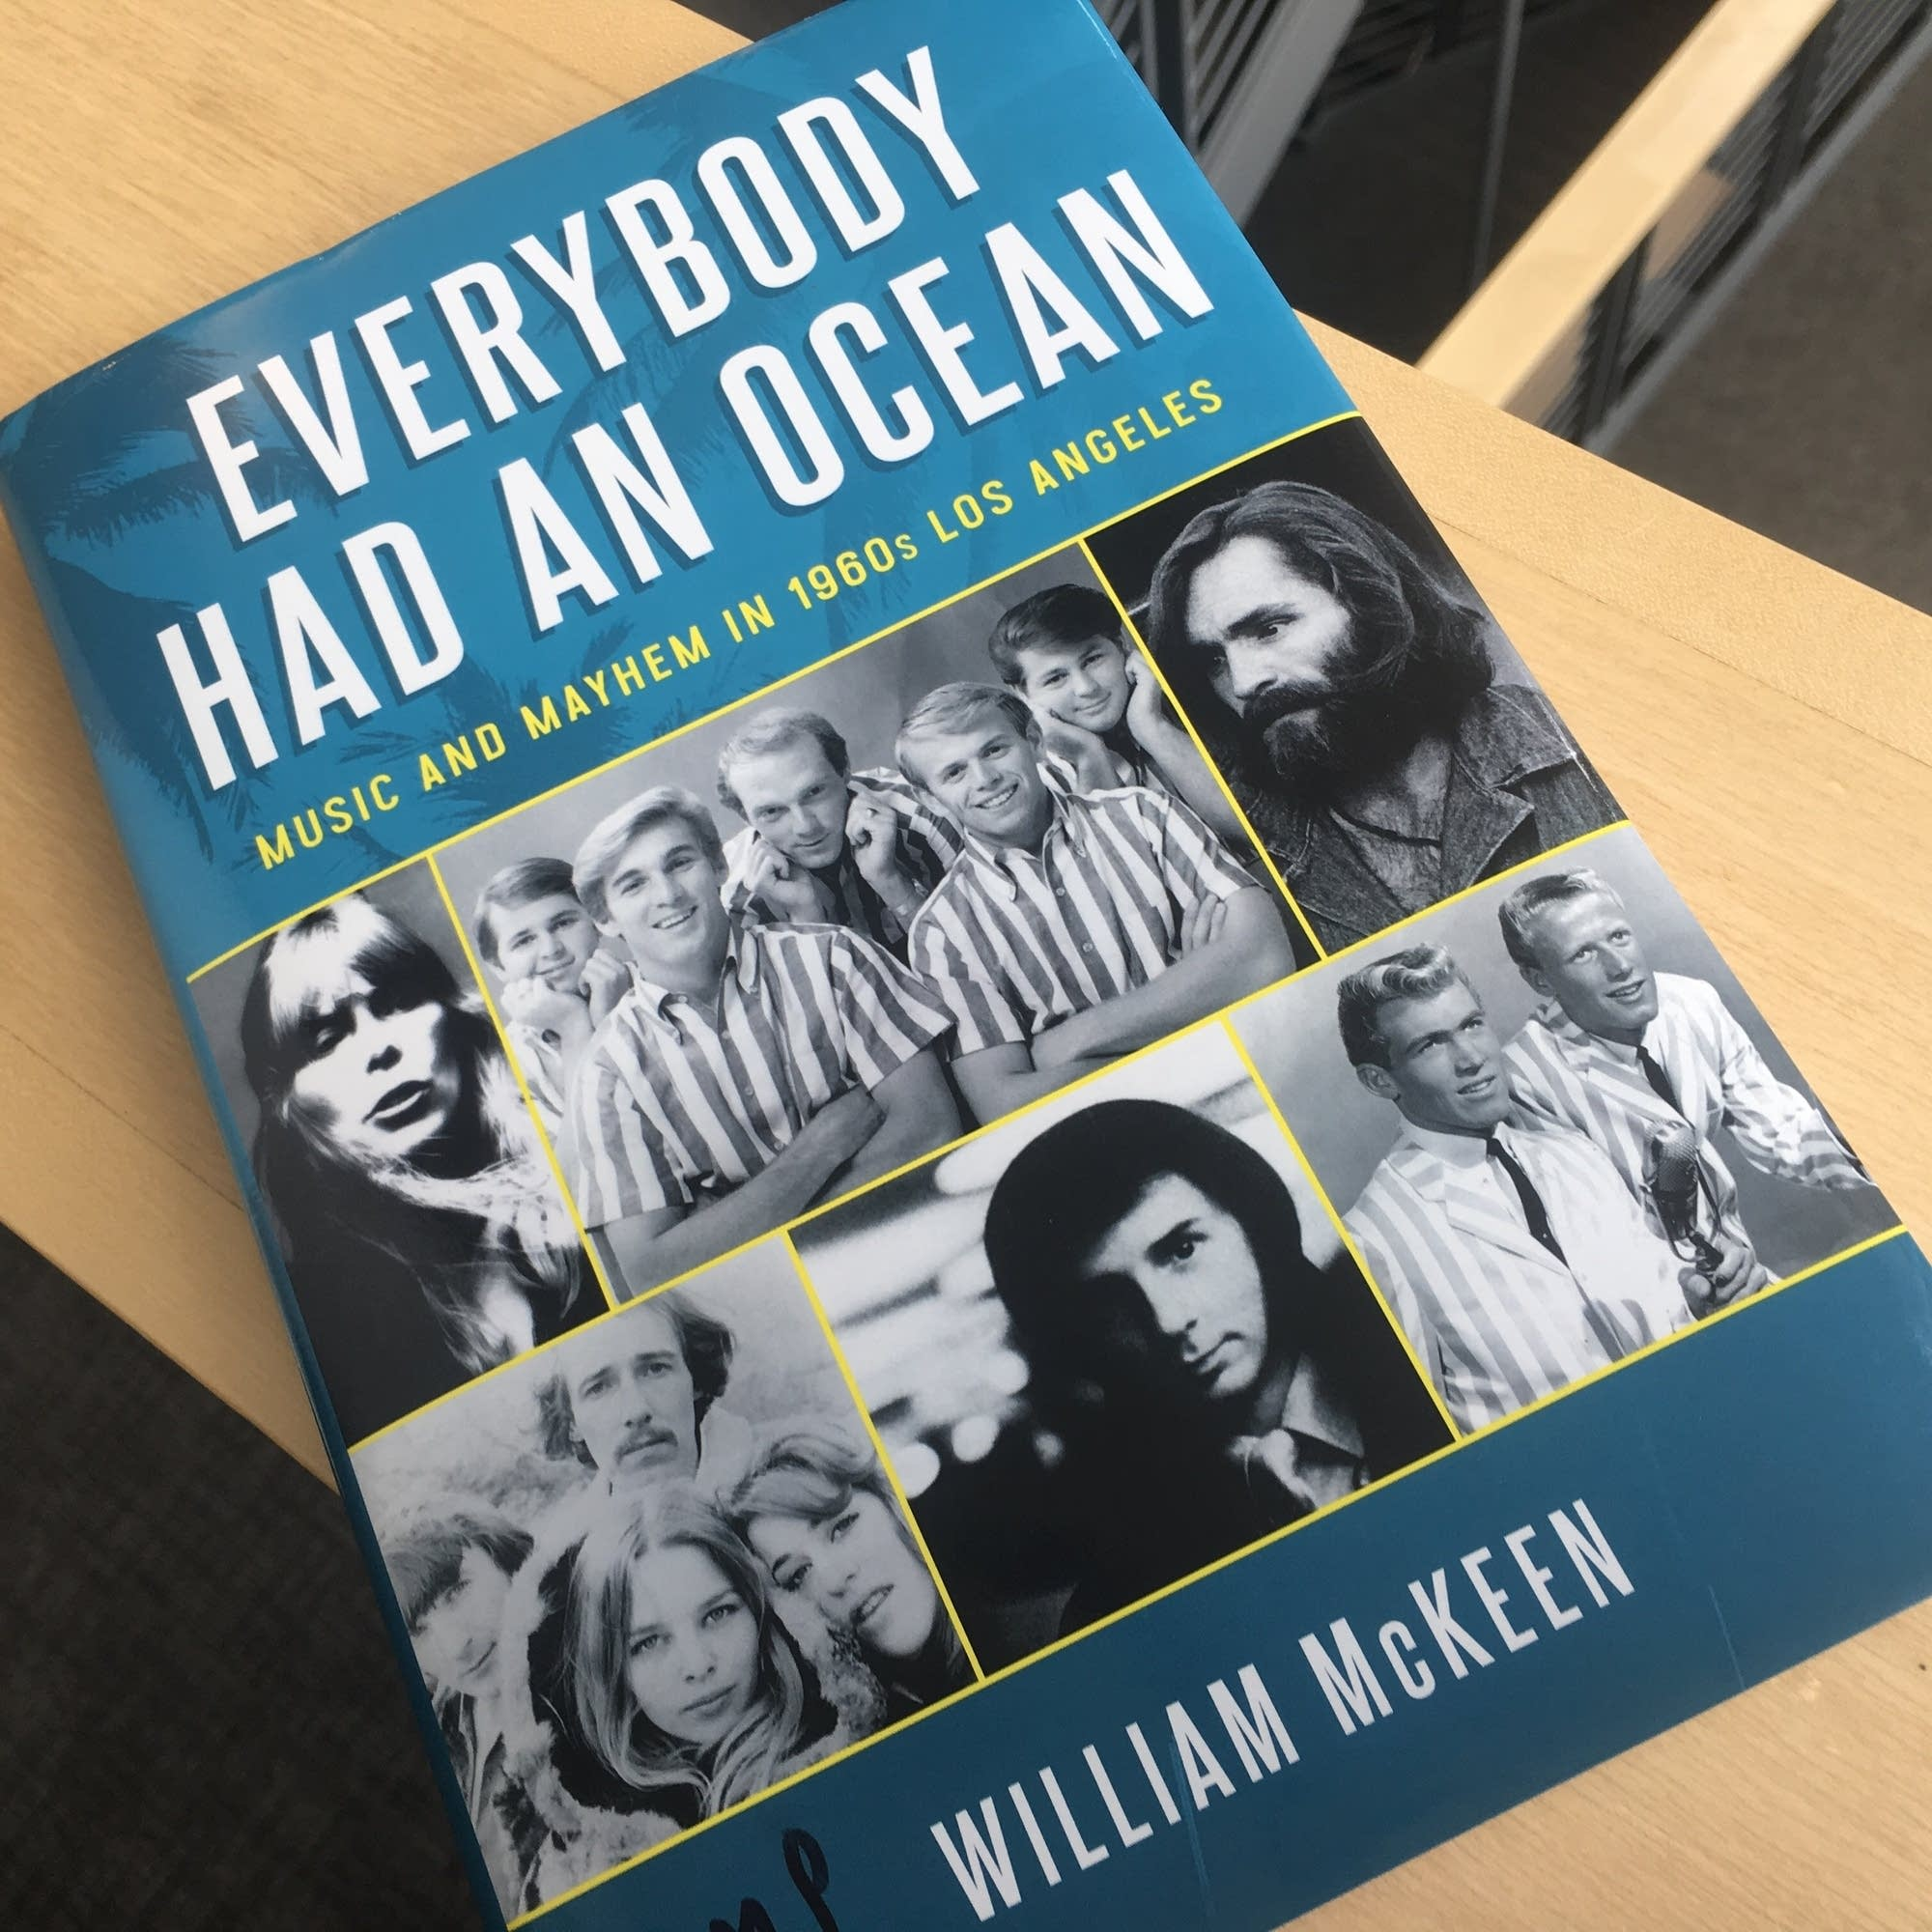 William McKeen's 'Everybody Had an Ocean'